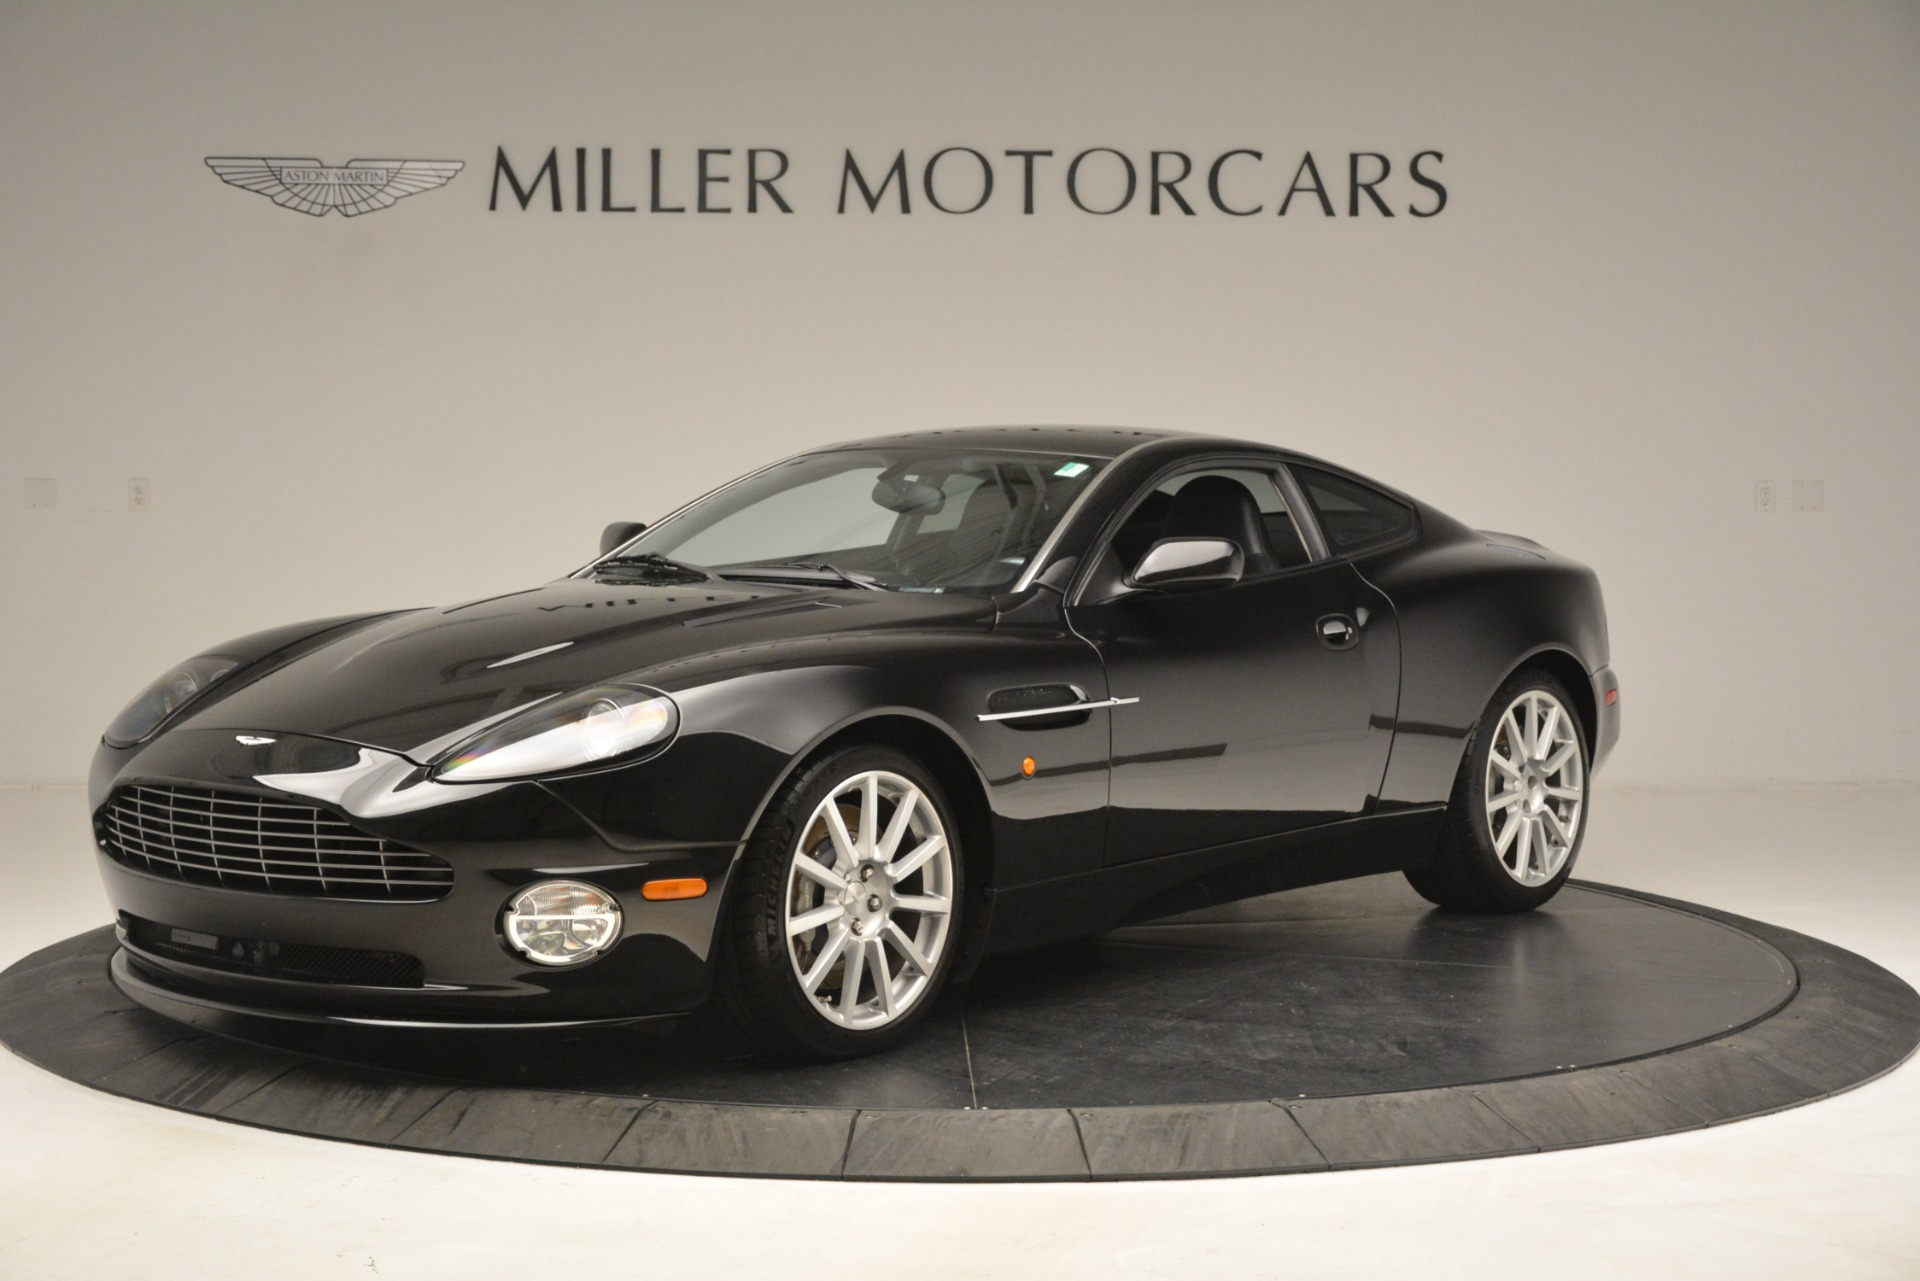 Used 2005 Aston Martin V12 Vanquish S For Sale In Westport, CT